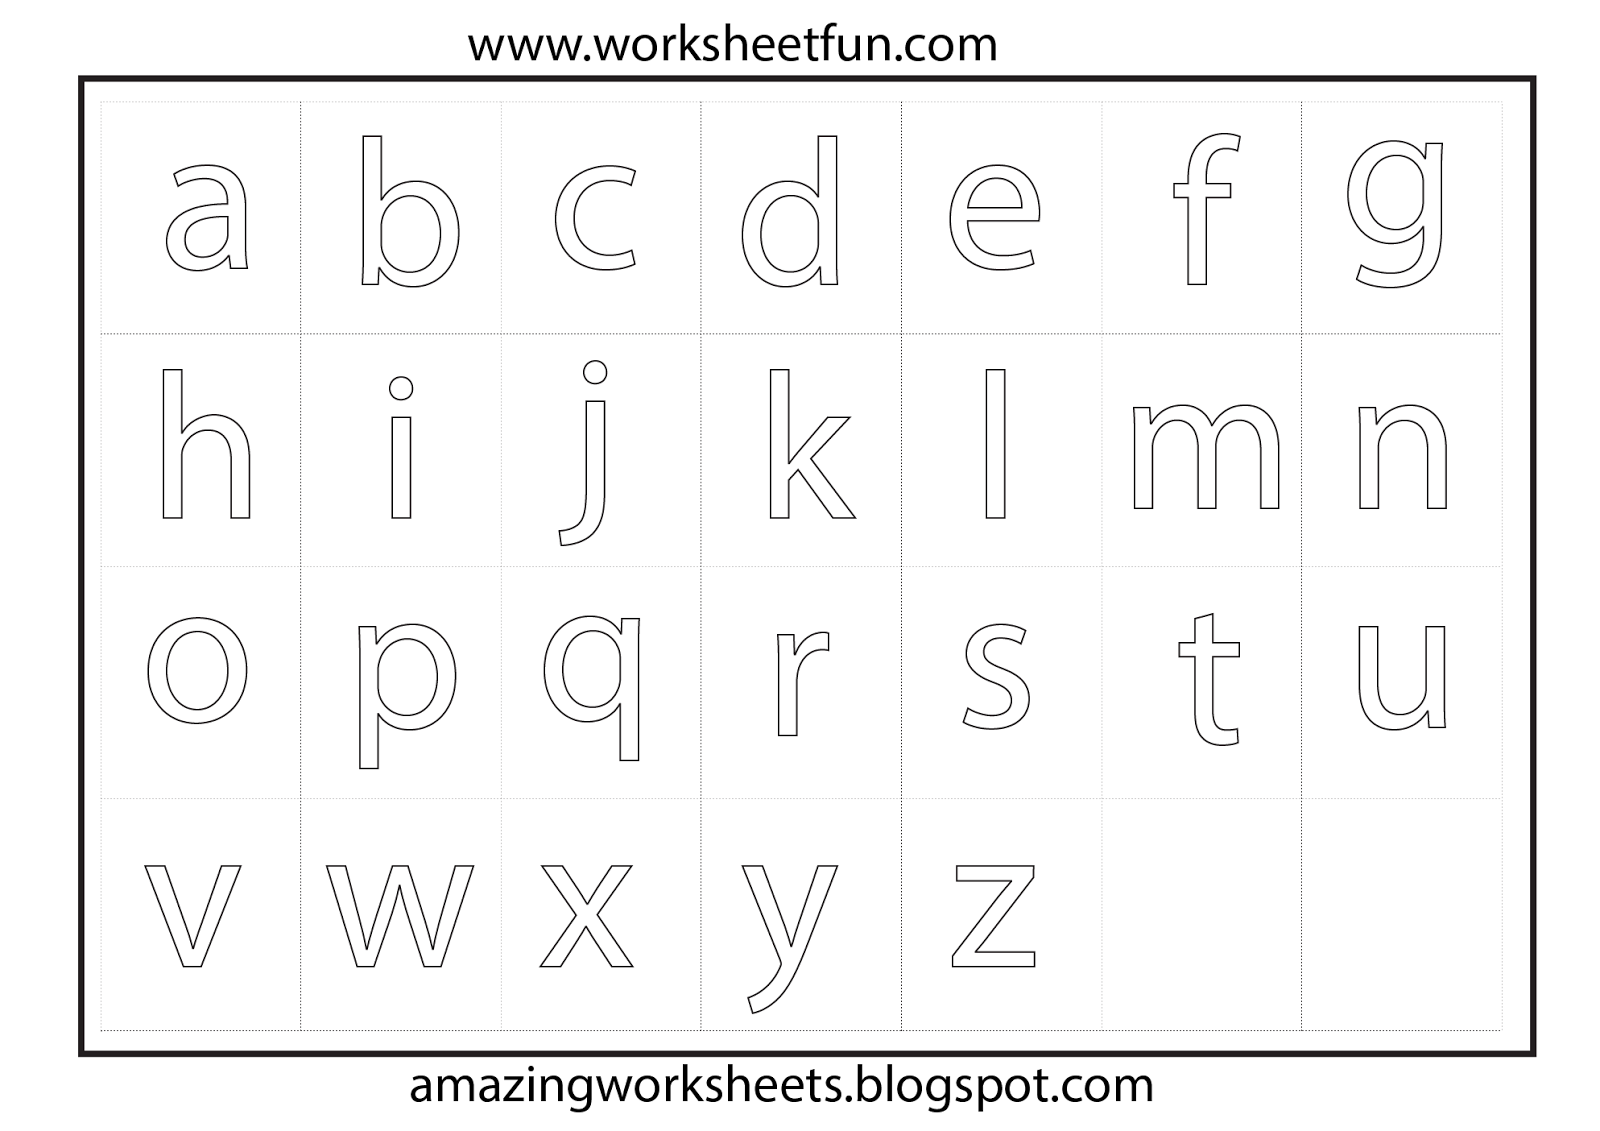 Printables Preschool Alphabet Worksheets A-z printable alphabet worksheets a z versaldobip versaldobip